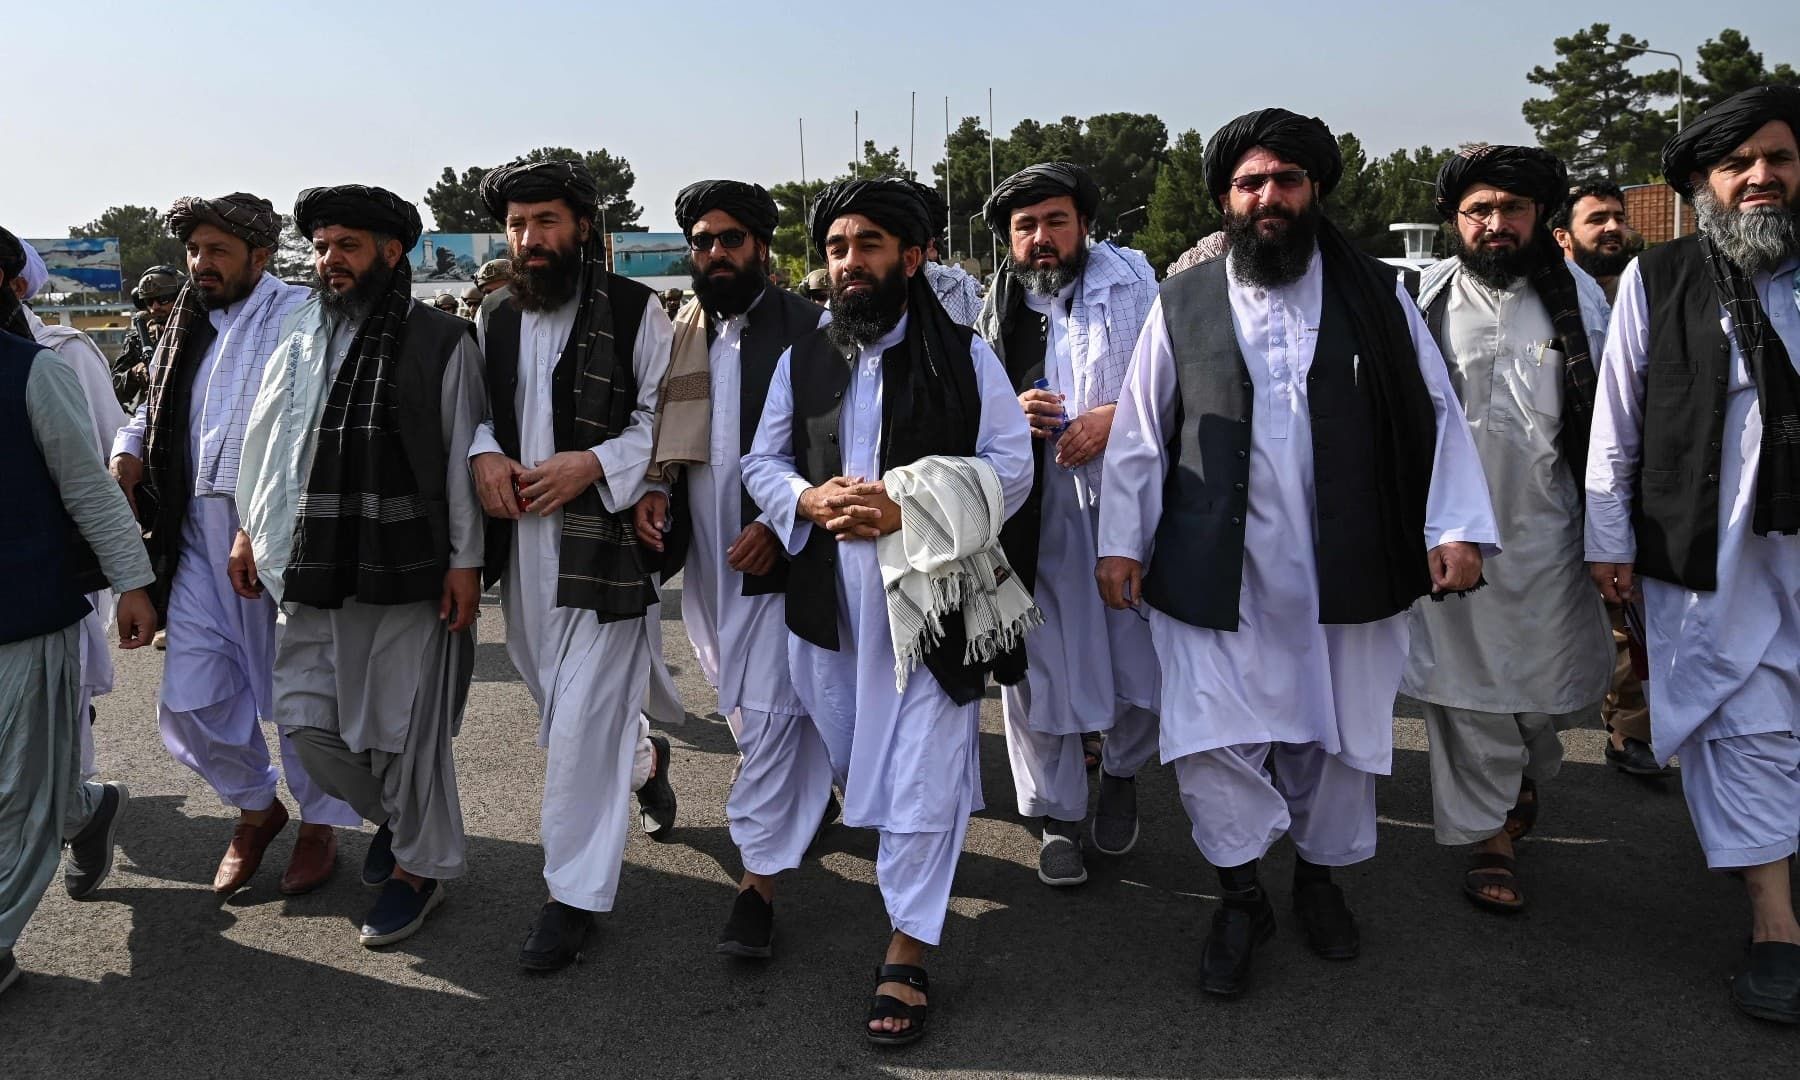 Taliban spokesman Zabihullah Mujahid (C, holding shawl) arrives as he is accompanied by officials to address a media conference at the airport in Kabul on August 31. — AFP